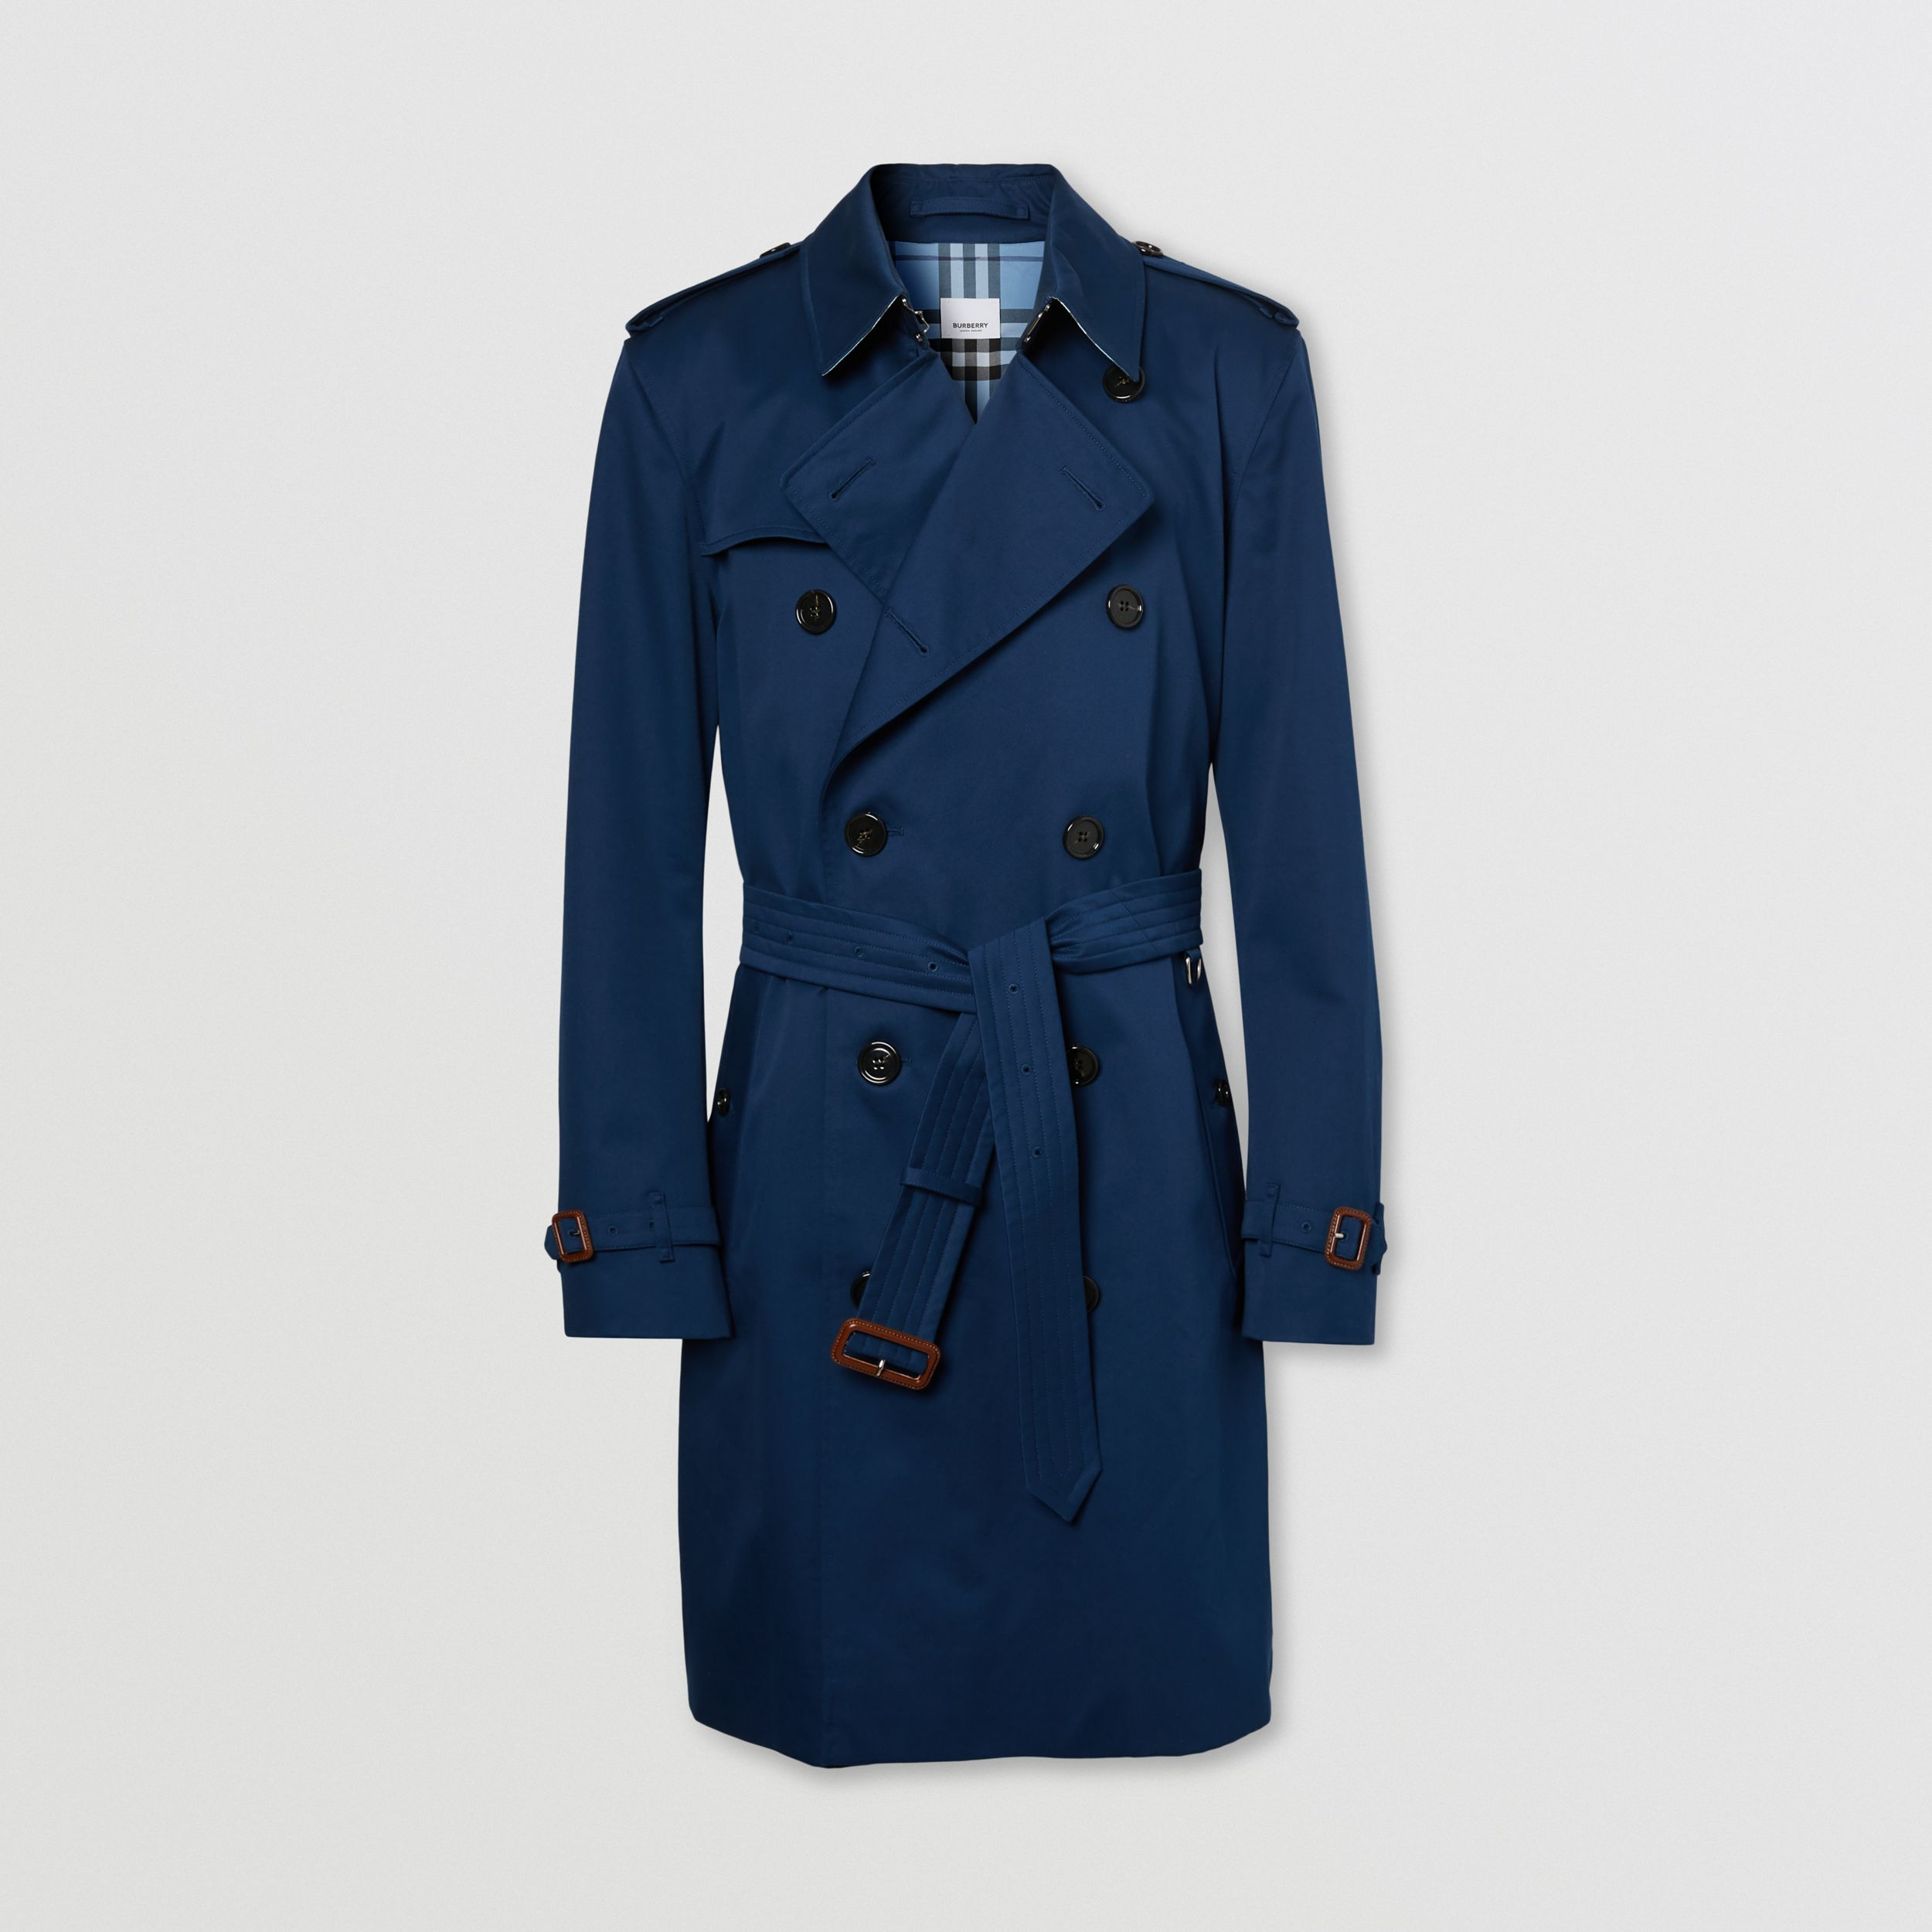 The Mid-length Kensington Trench Coat in Ink Blue - Men | Burberry Hong Kong S.A.R. - 4